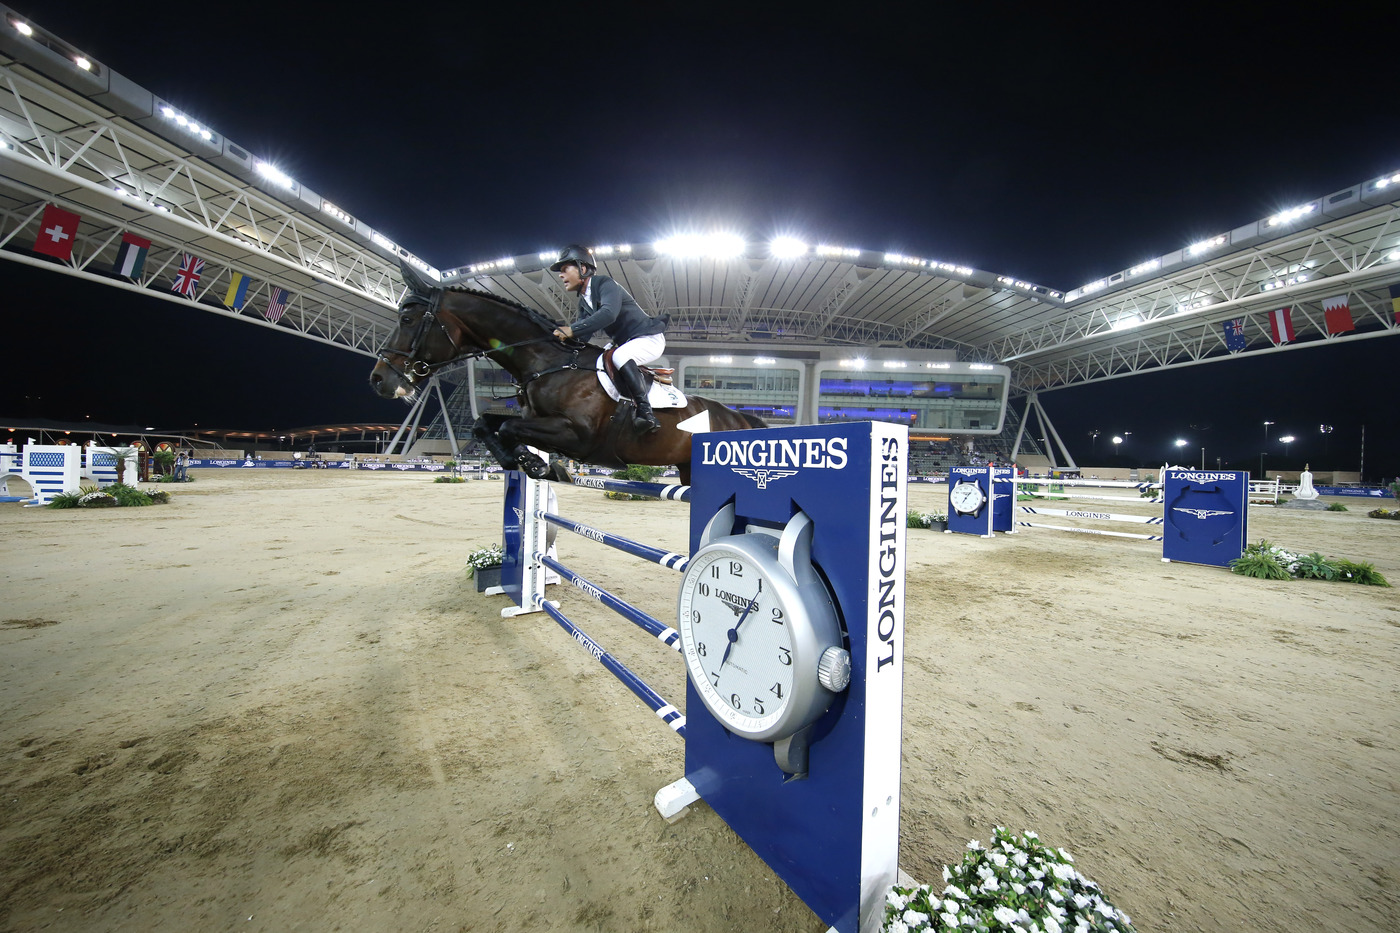 Longines Show Jumping Event: Rolf-Göran Bengtsson won the Longines Global Champions Tour 2016 after a final full of suspense in Doha 2